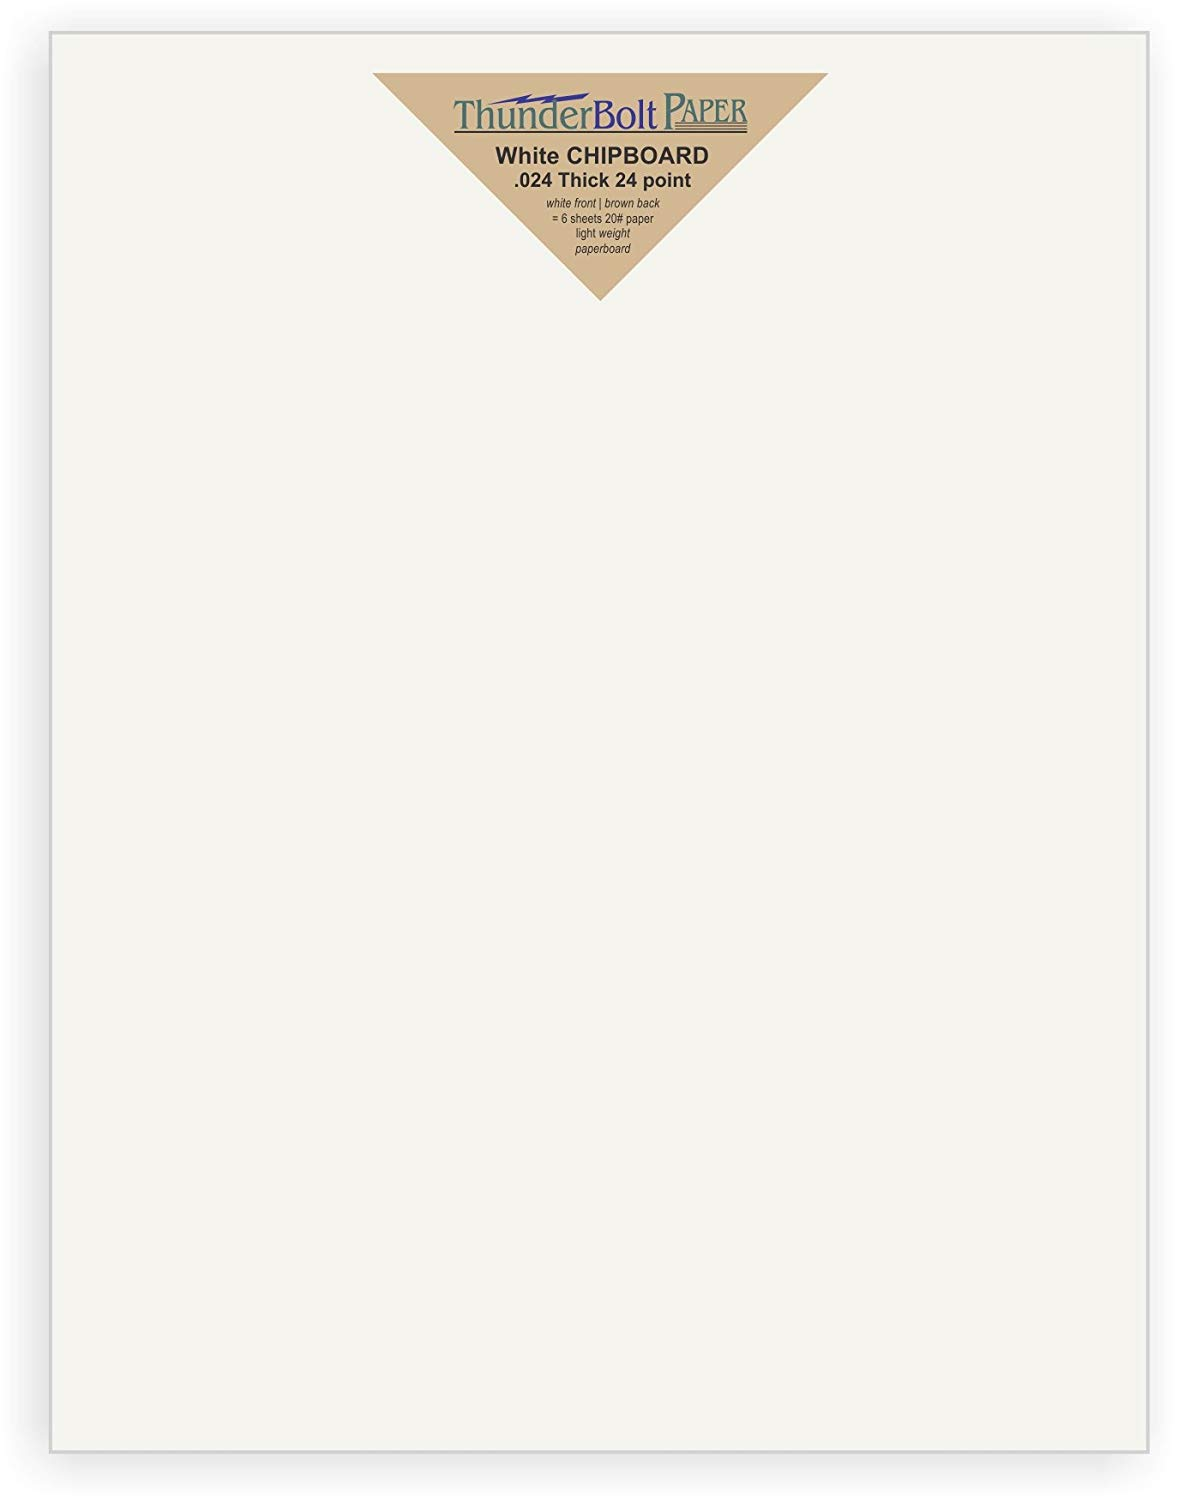 150 Sheets Chipboard 46pt 3 X 5 Inches Medium Weight Photo|Card Size .046 Caliper Thickness Cardboard Craft|Packing Brown Kraft Paper Board point